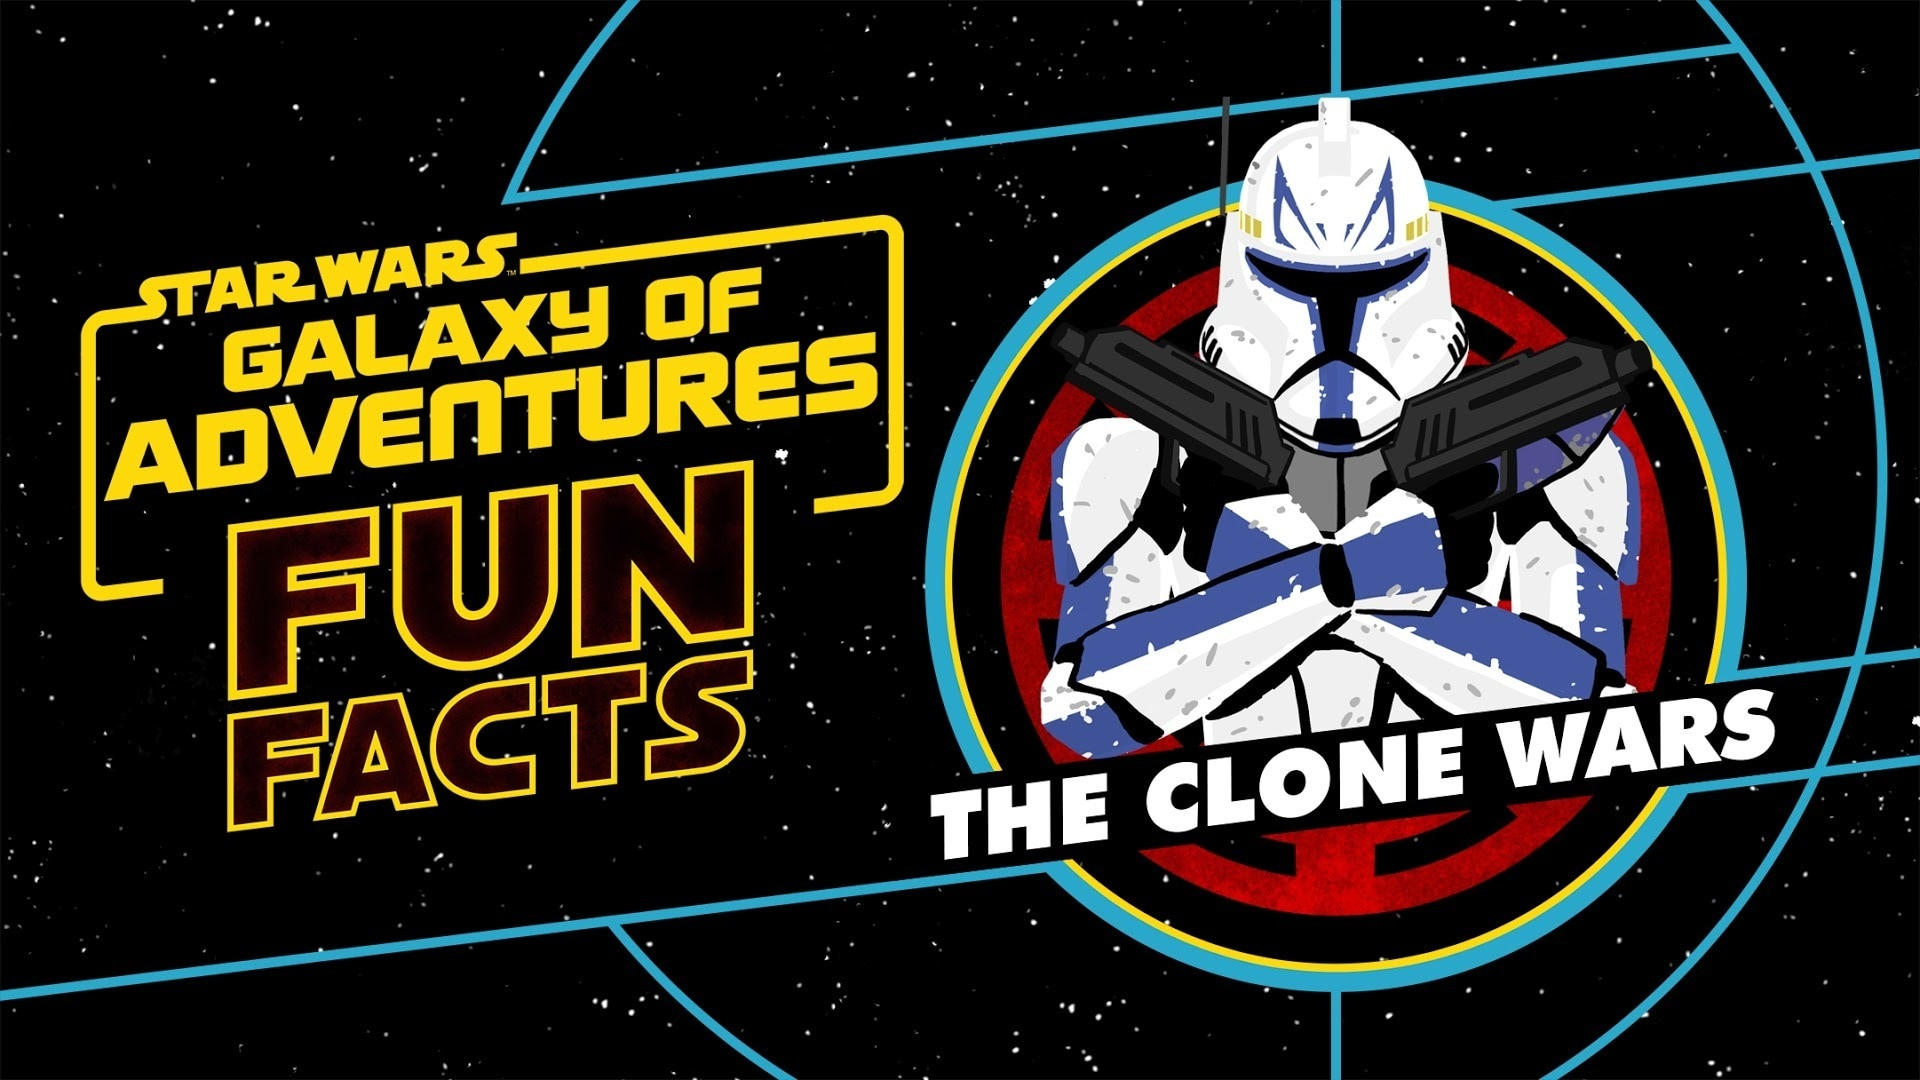 The Clone Wars | Star Wars Galaxy of Adventures Fun Facts